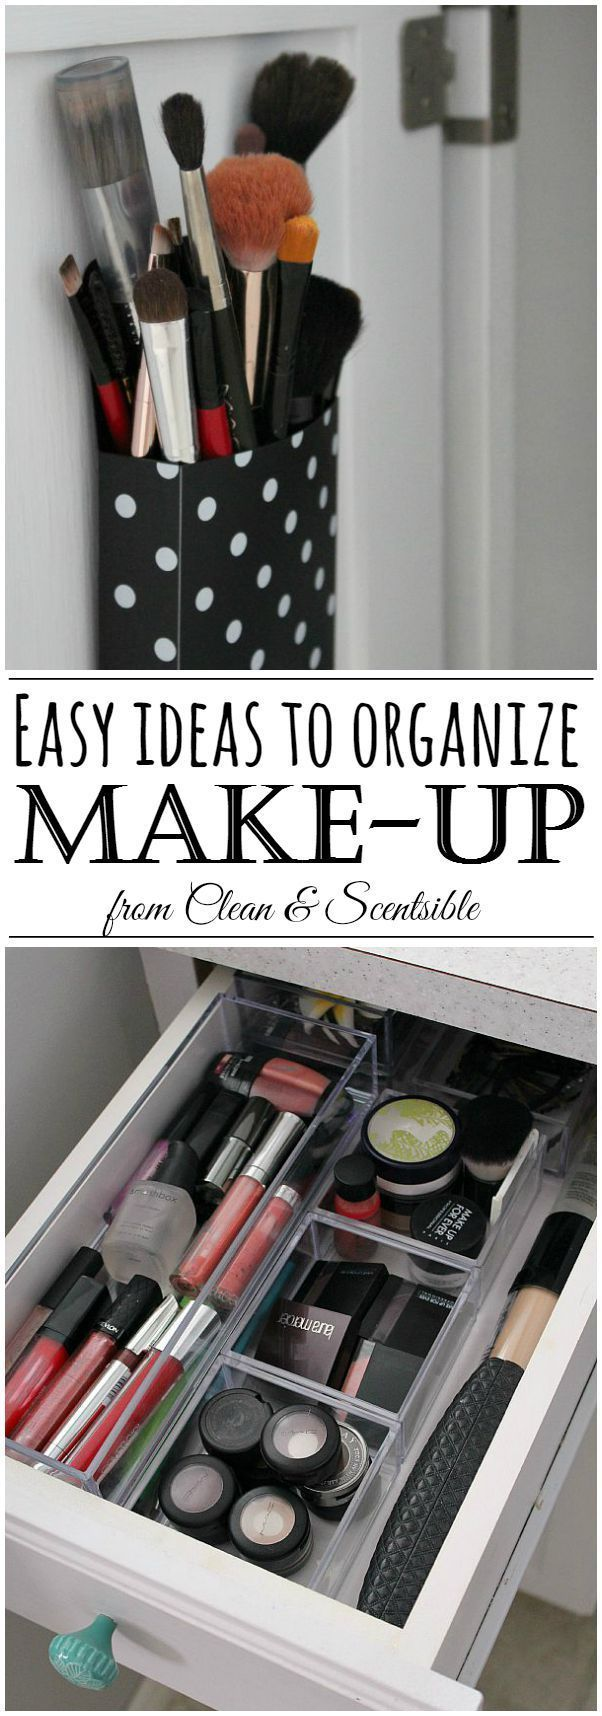 Great ideas for organizing your make-up and a list for when to toss that old mak...